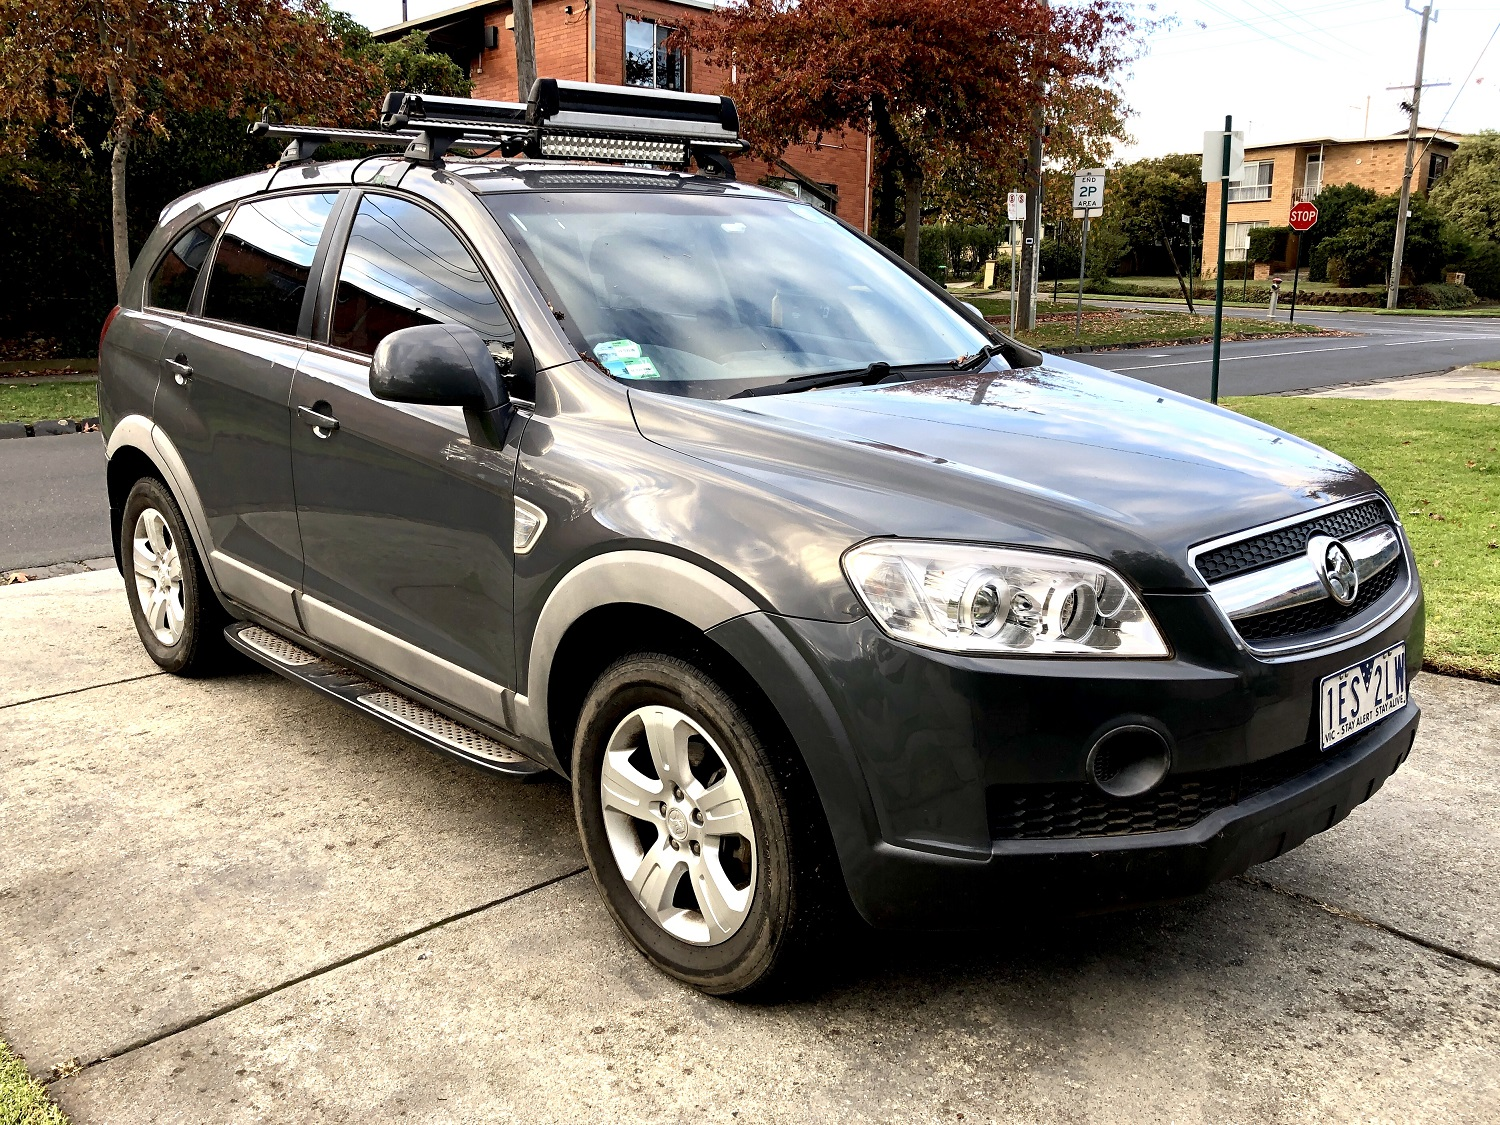 Picture of Ka's 2010 Holden Captiva